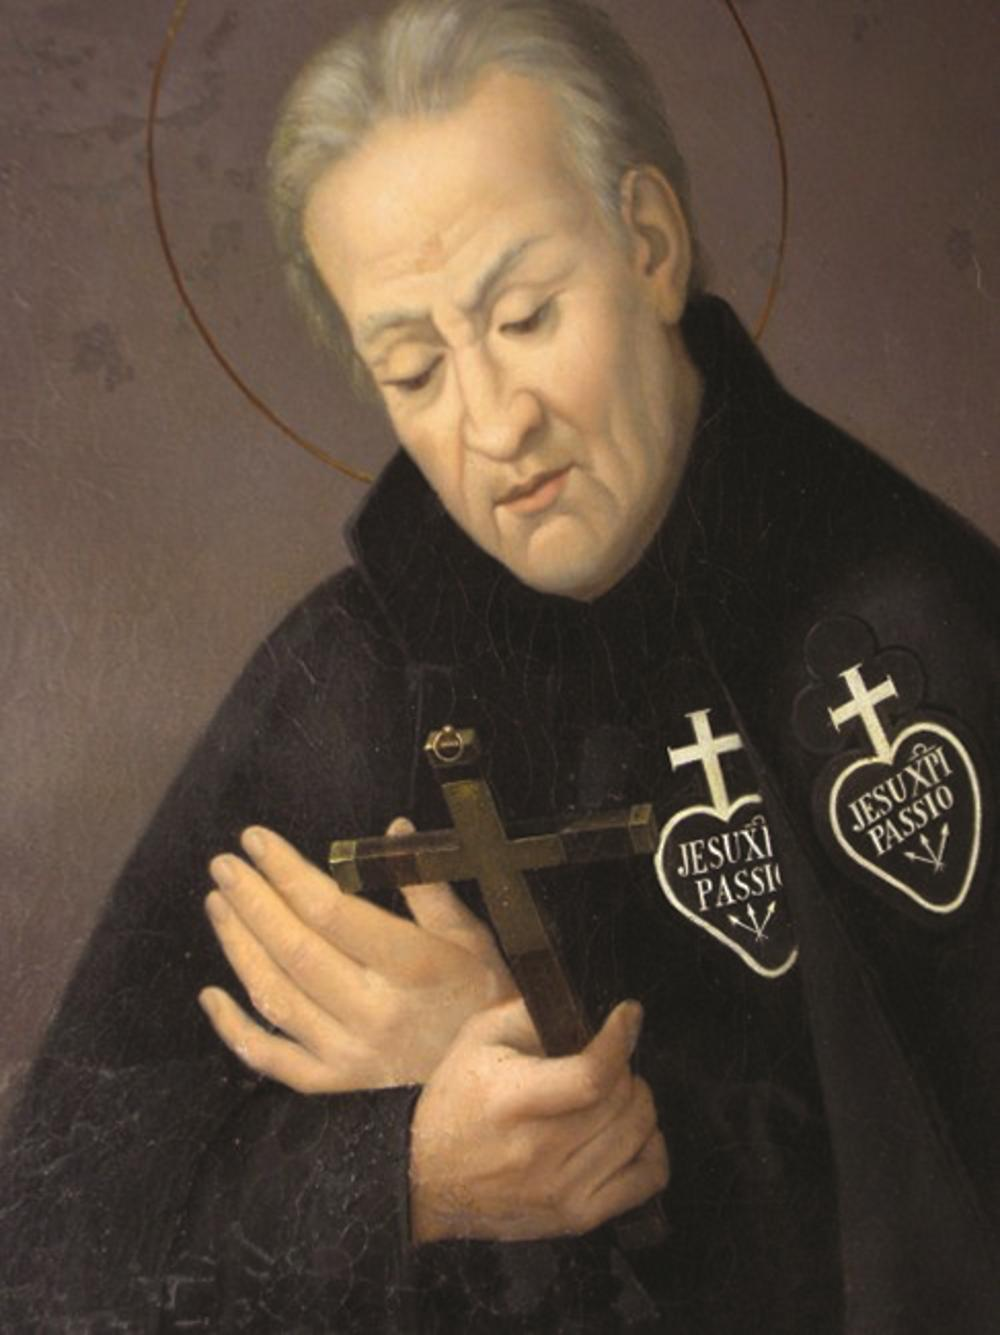 Meditate on the Passion of Christ: St. Paul of the Cross